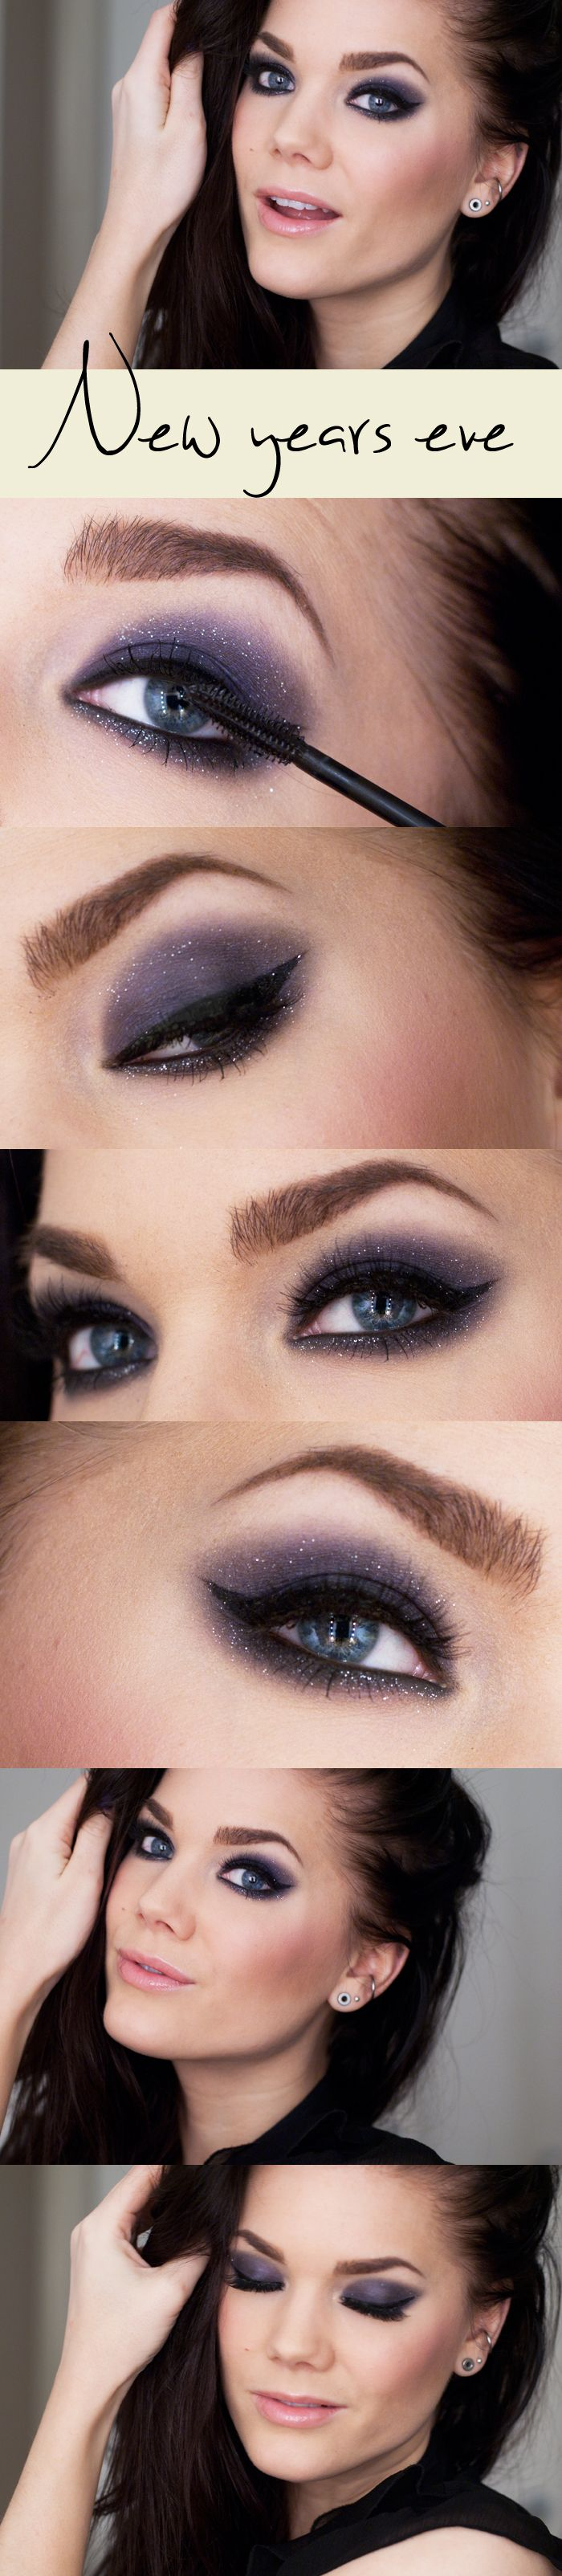 """Linda Hallberg """"Purple for New Years Eve"""" 